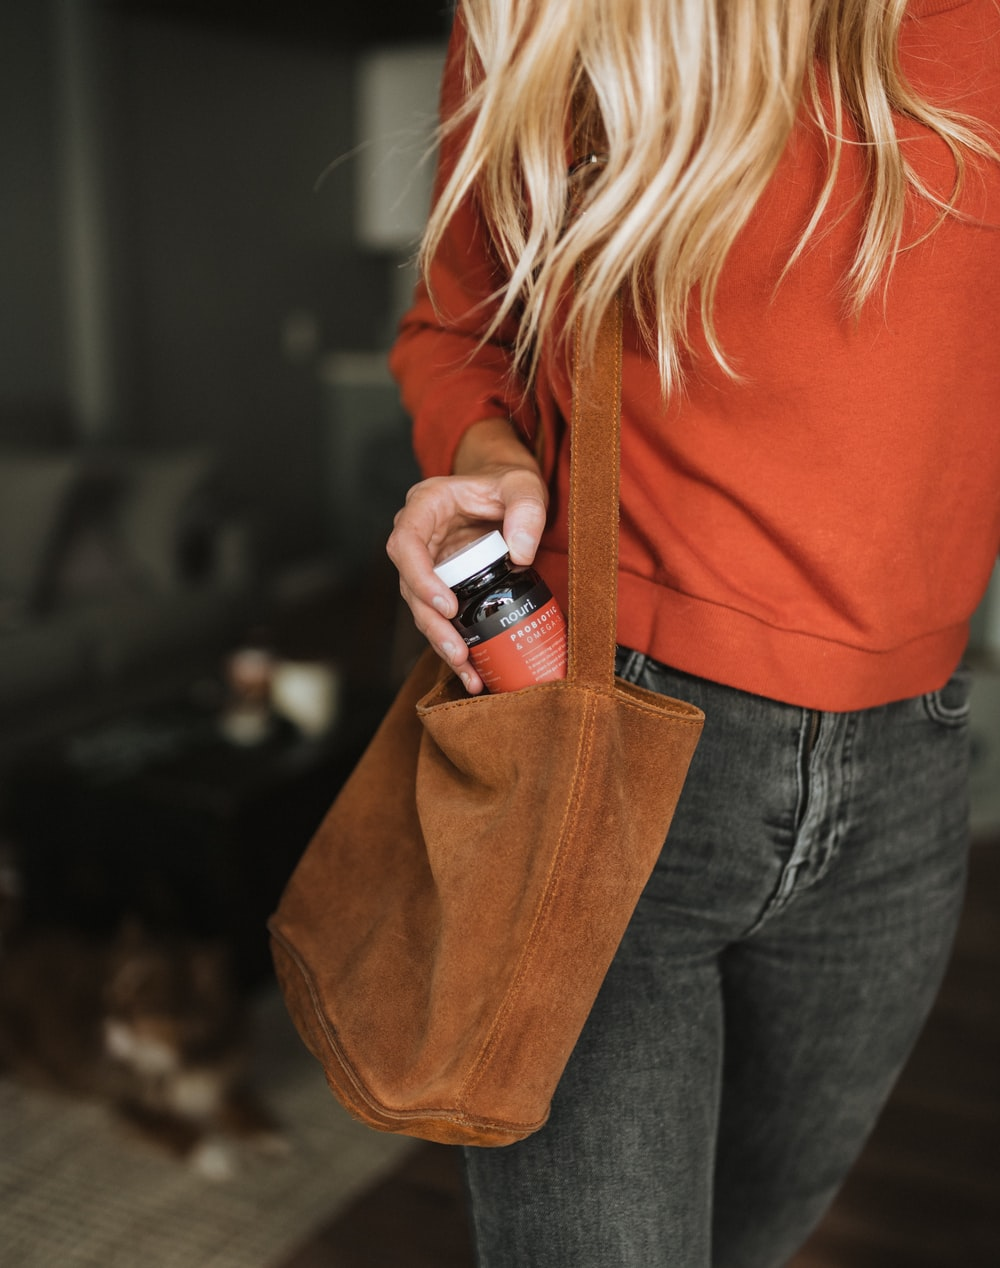 woman holding bottle on bag